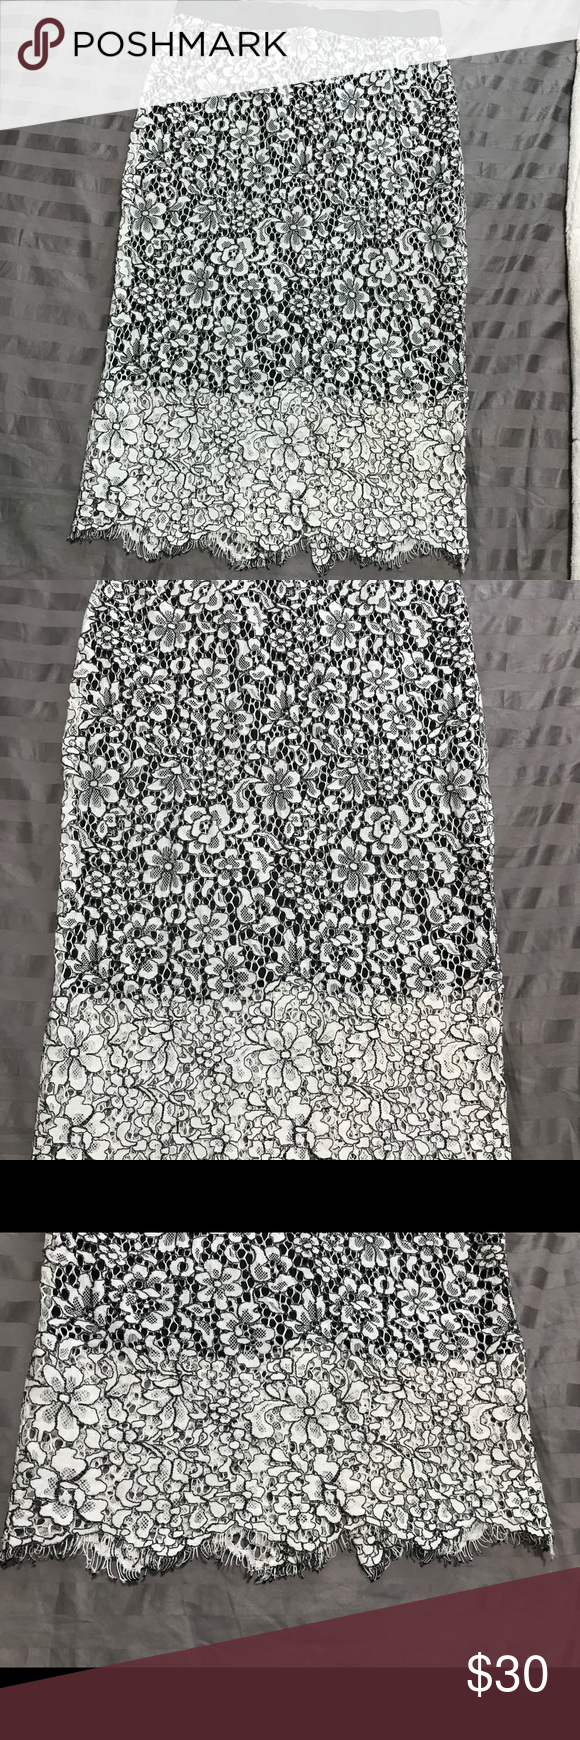 black & white pencil skirt.  Never Worn. Size 4 pencil skirt from Express.  Zip back.  I just don't have anywhere to wear this to!  New Condition. Express Skirts Pencil